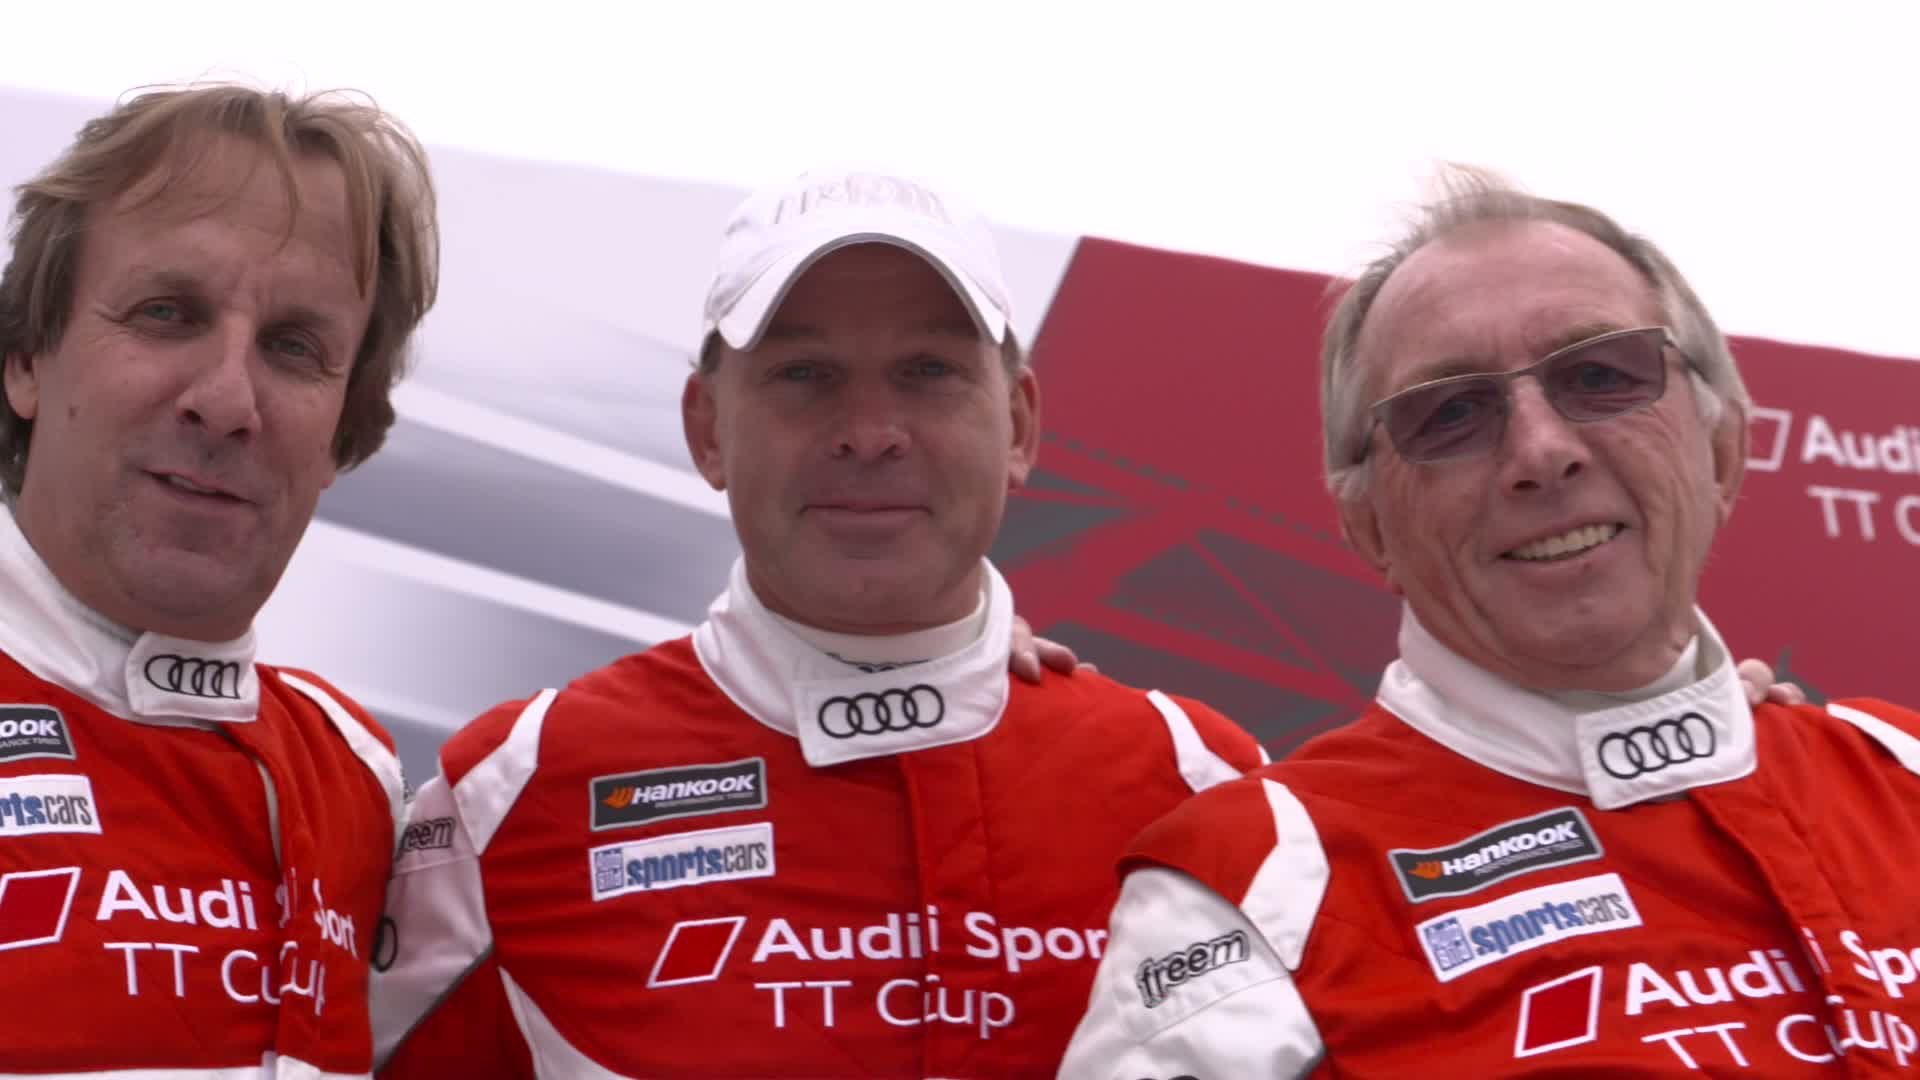 60 Seconds of Audi Sport 75/2015 - Audi Sport TT Cup, Preview Oschersleben